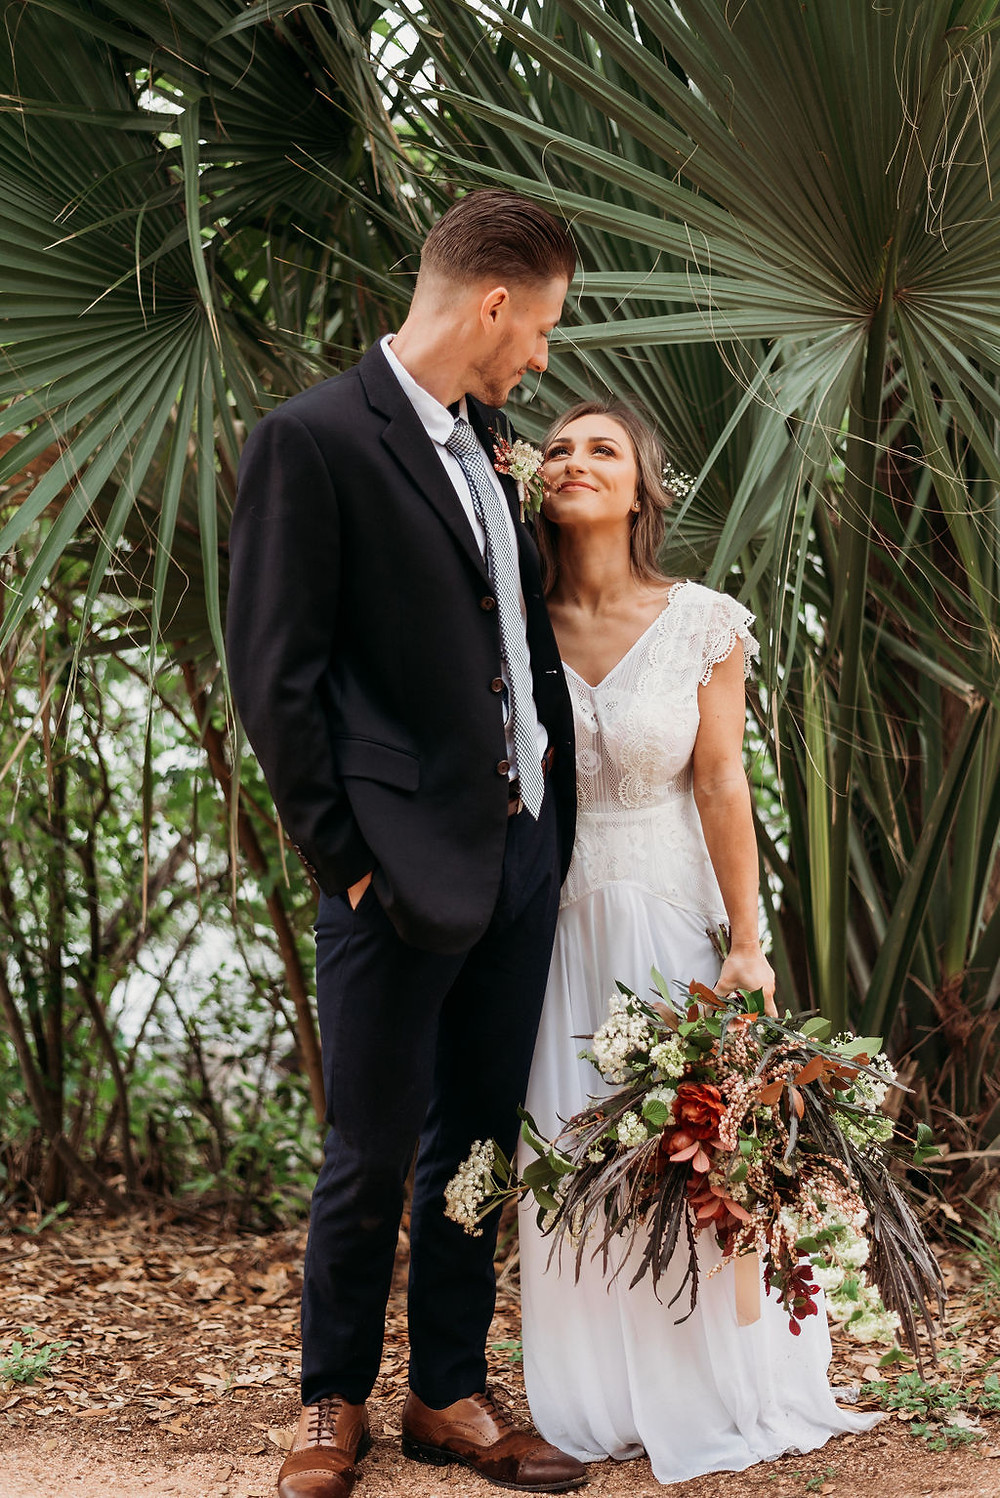 bride and groom are posed in front of palm trees by lady bird lake during their austin elopement